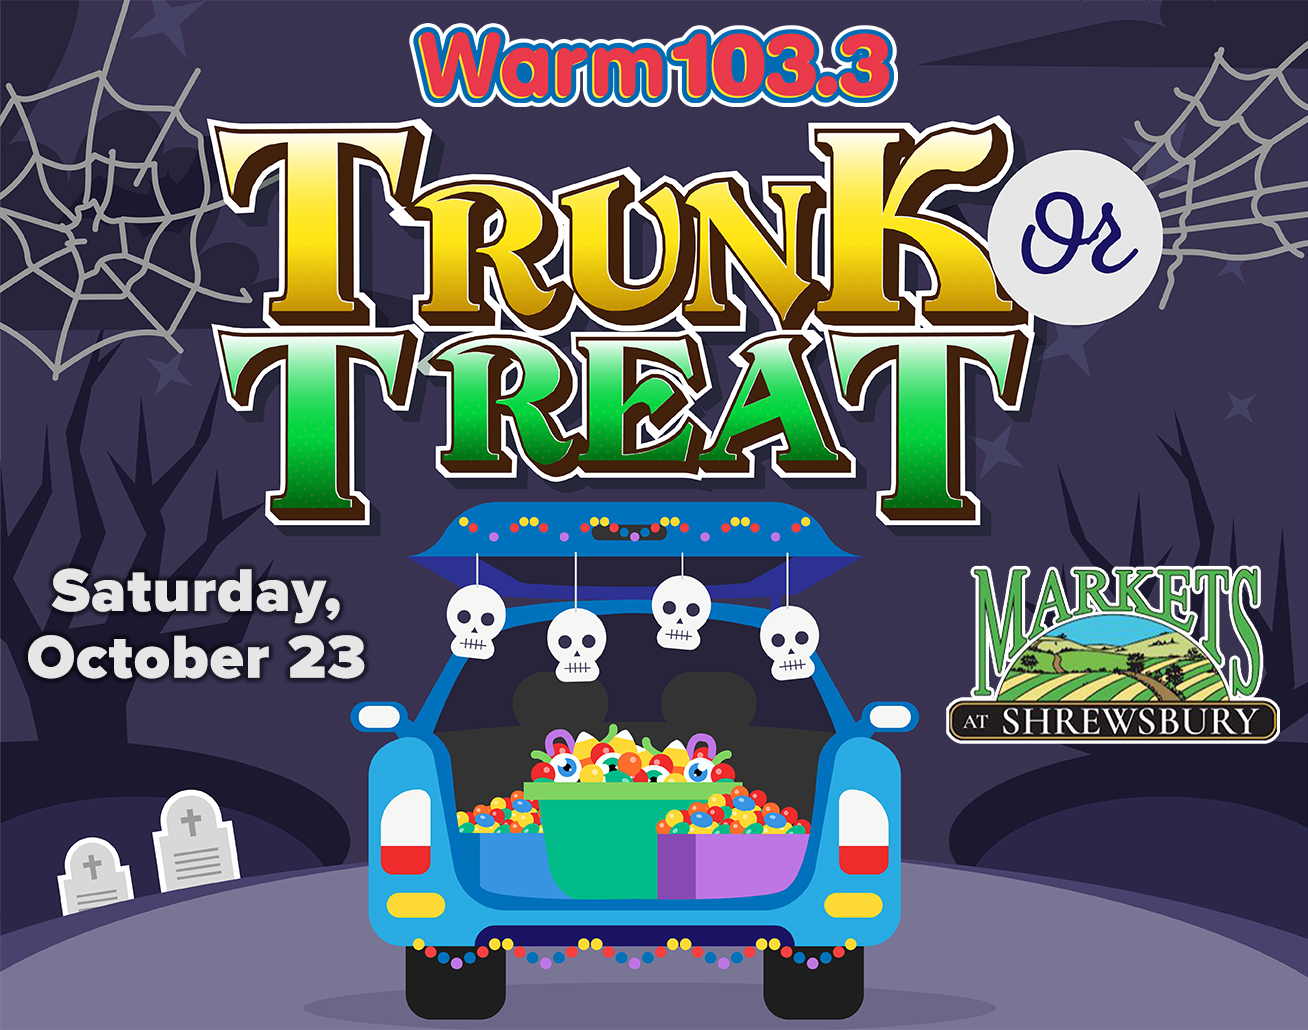 Register for Trunk or Treat at the Markets at Shrewsbury on October 23rd